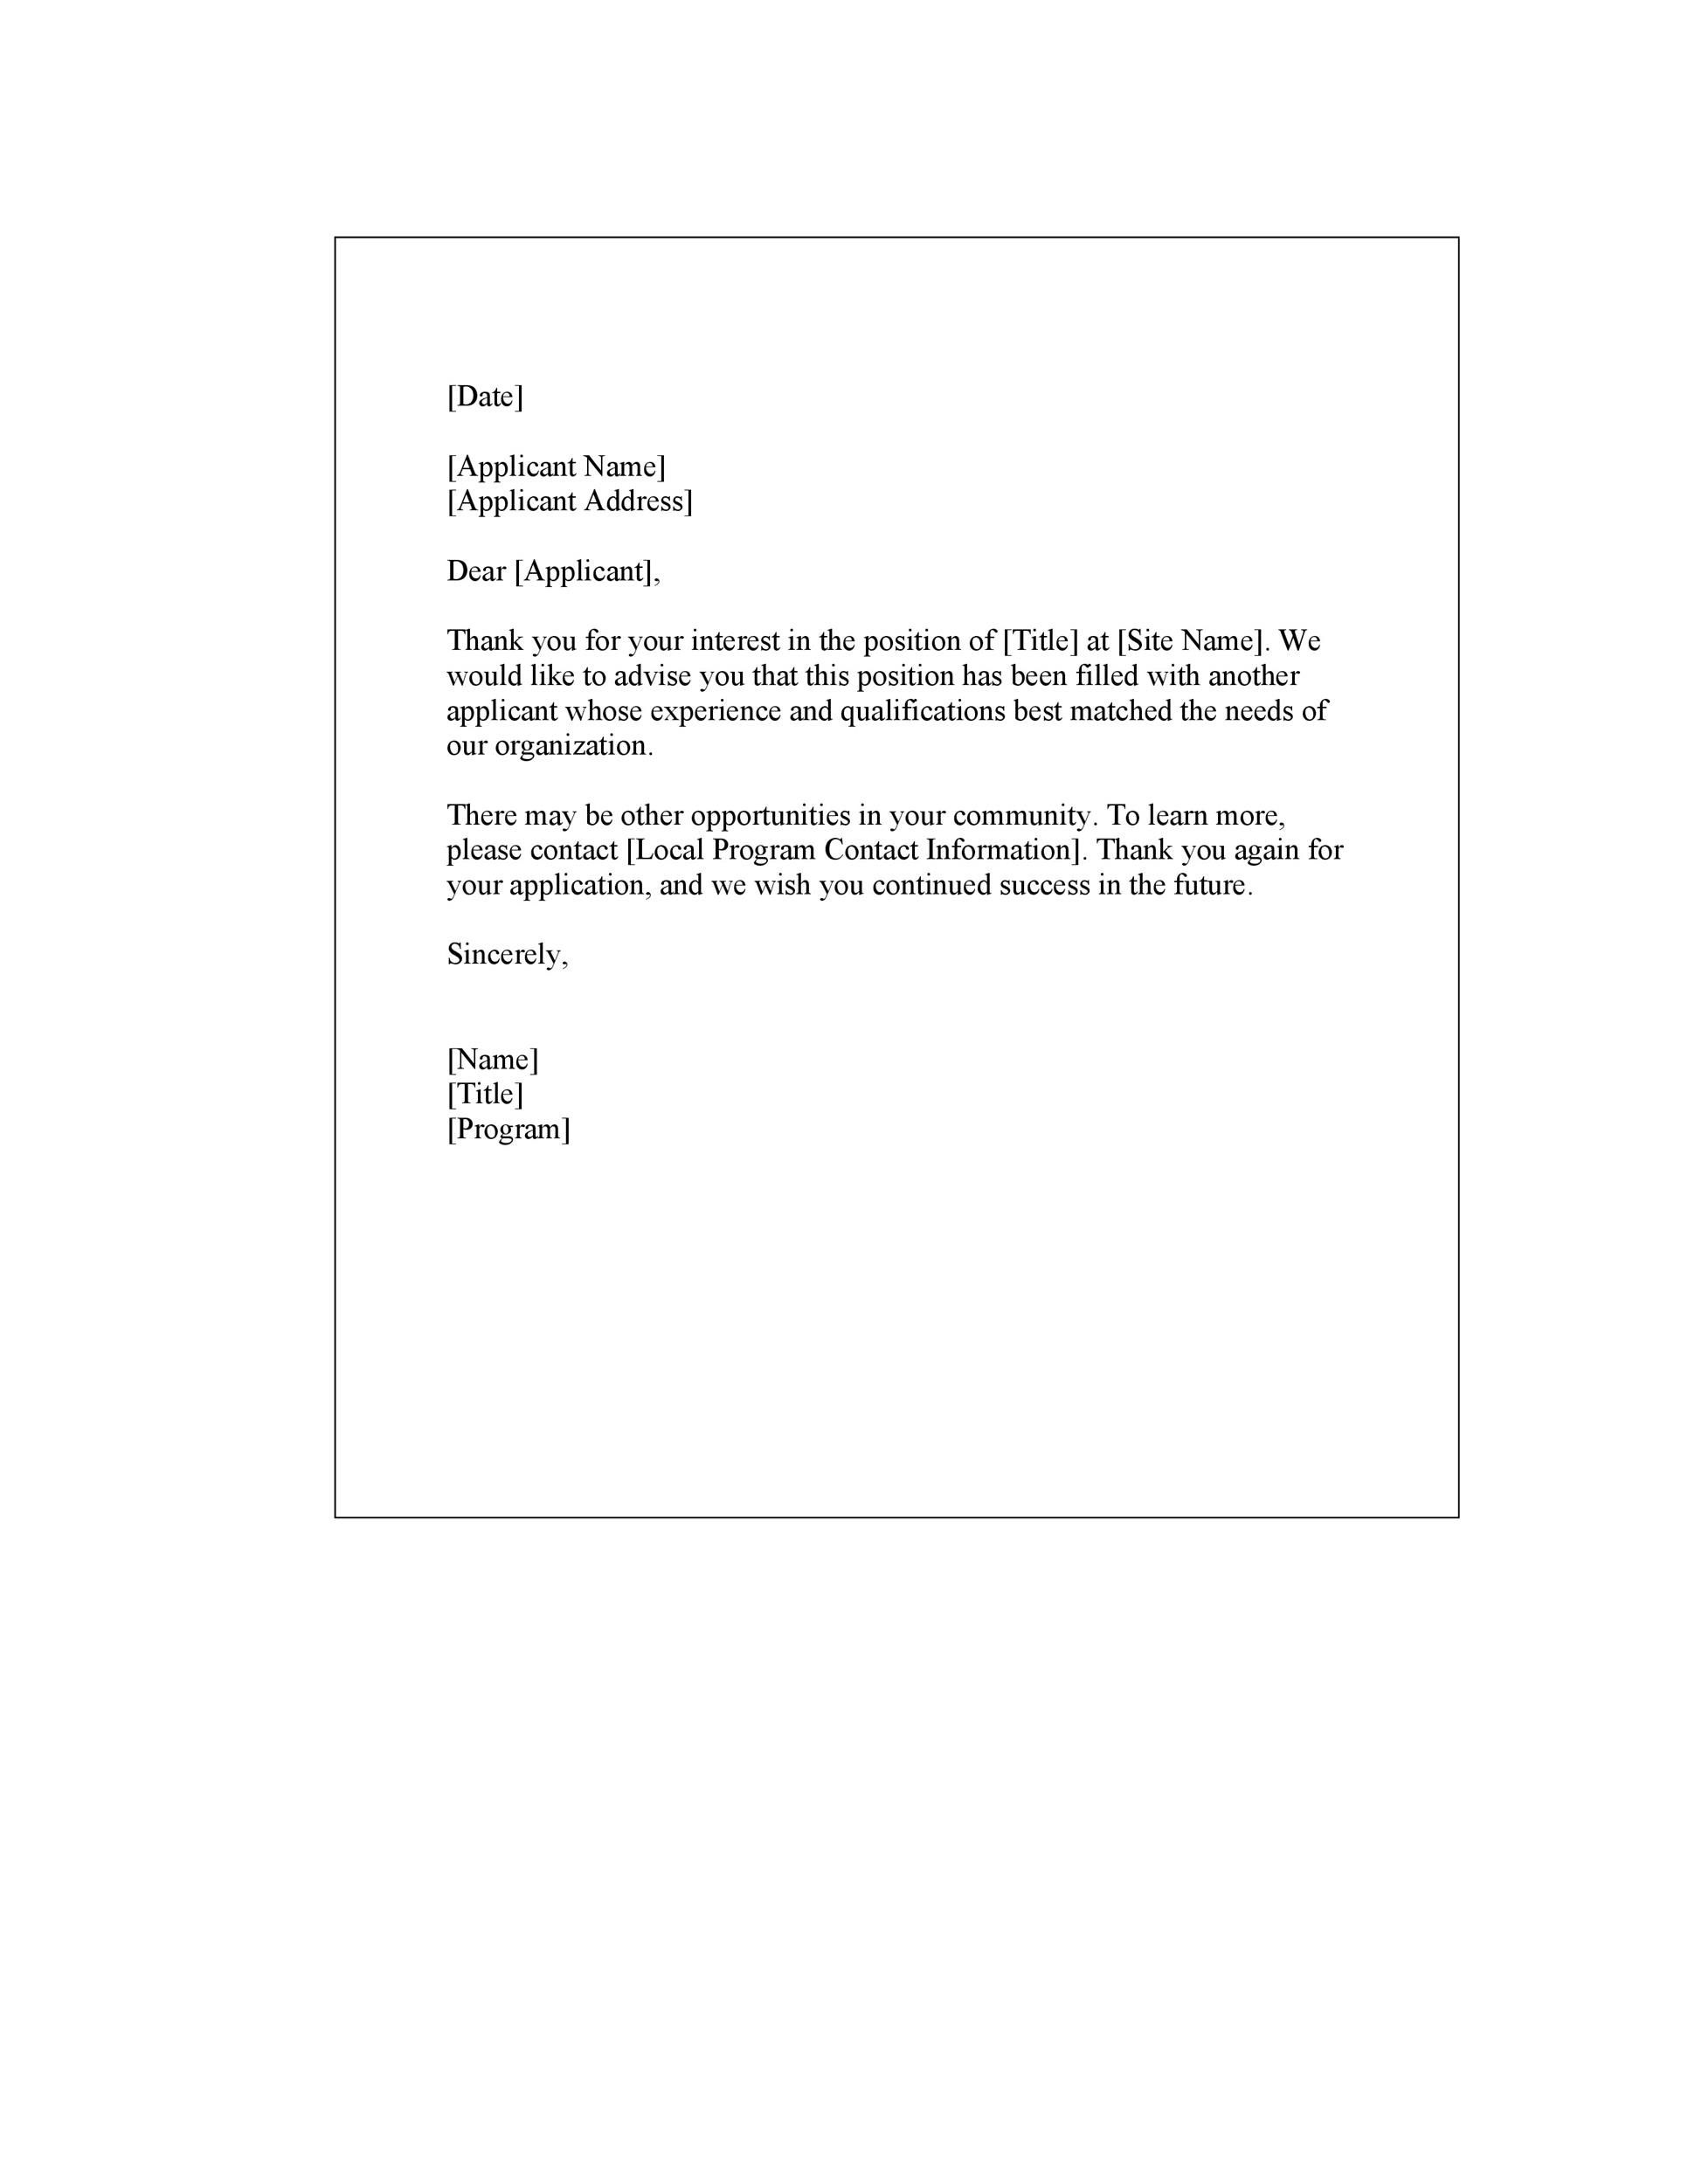 Rejection Letter To Applicant from templatelab.com